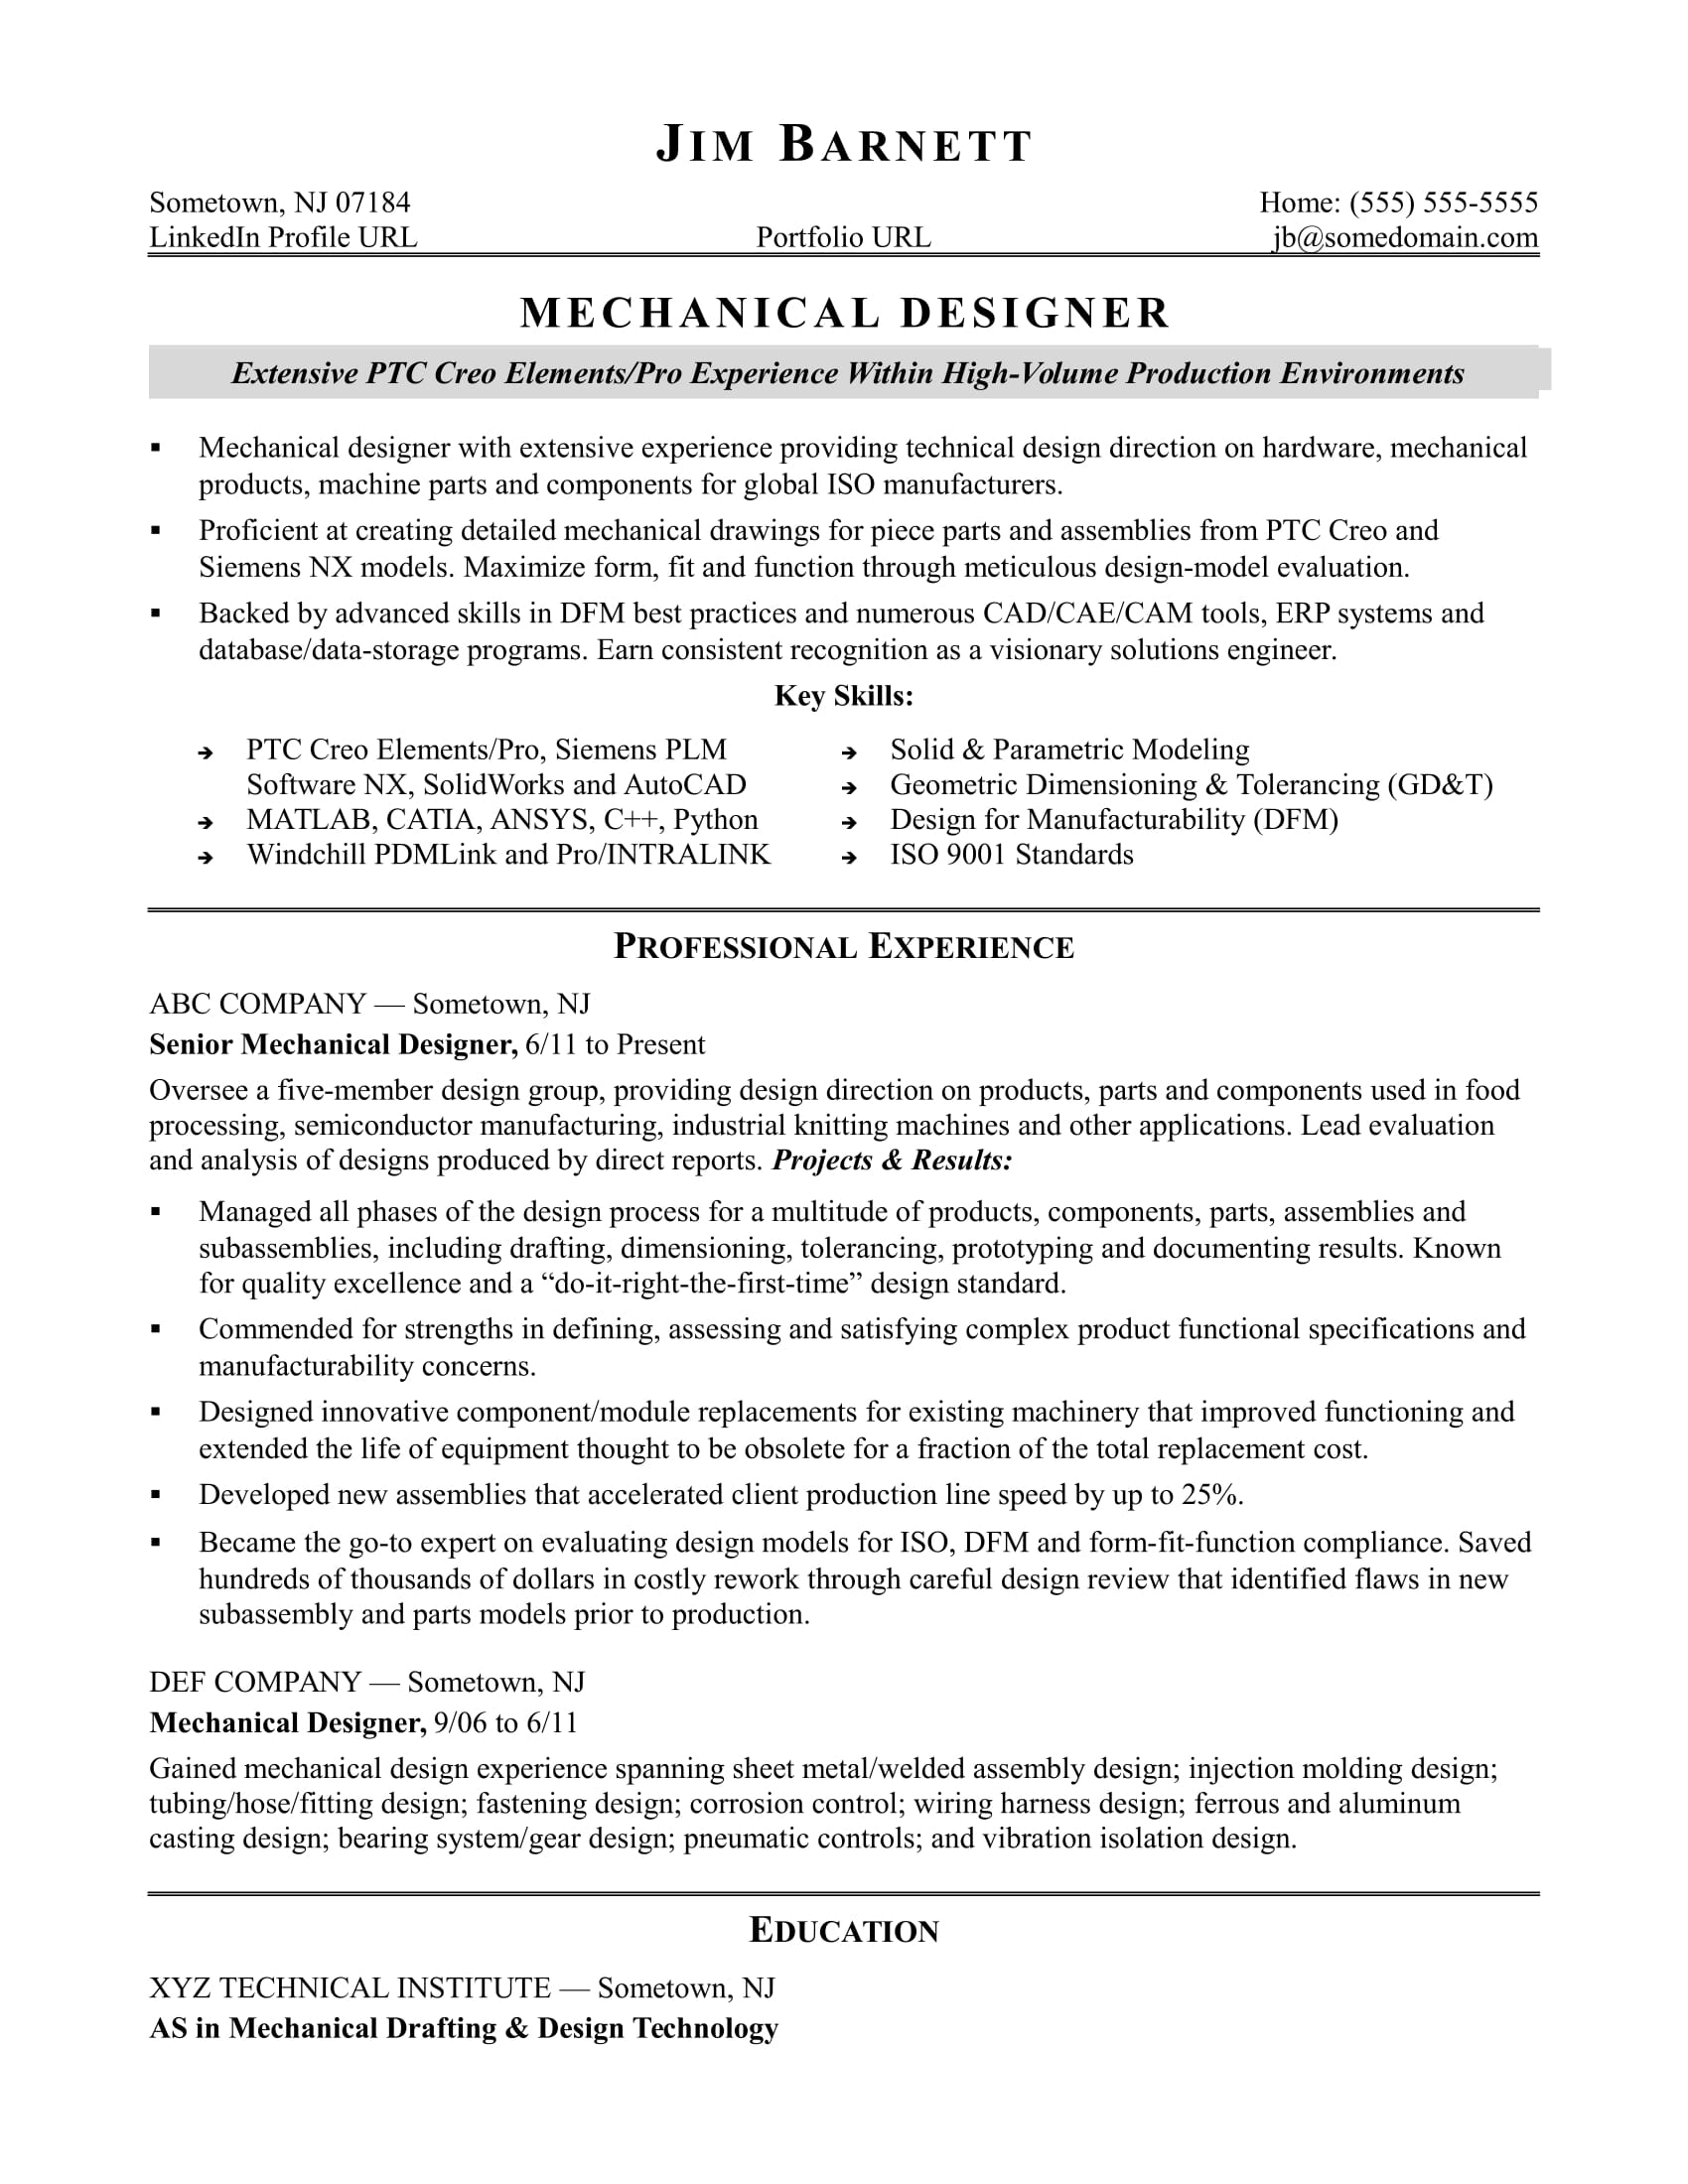 mechanical designer resumes